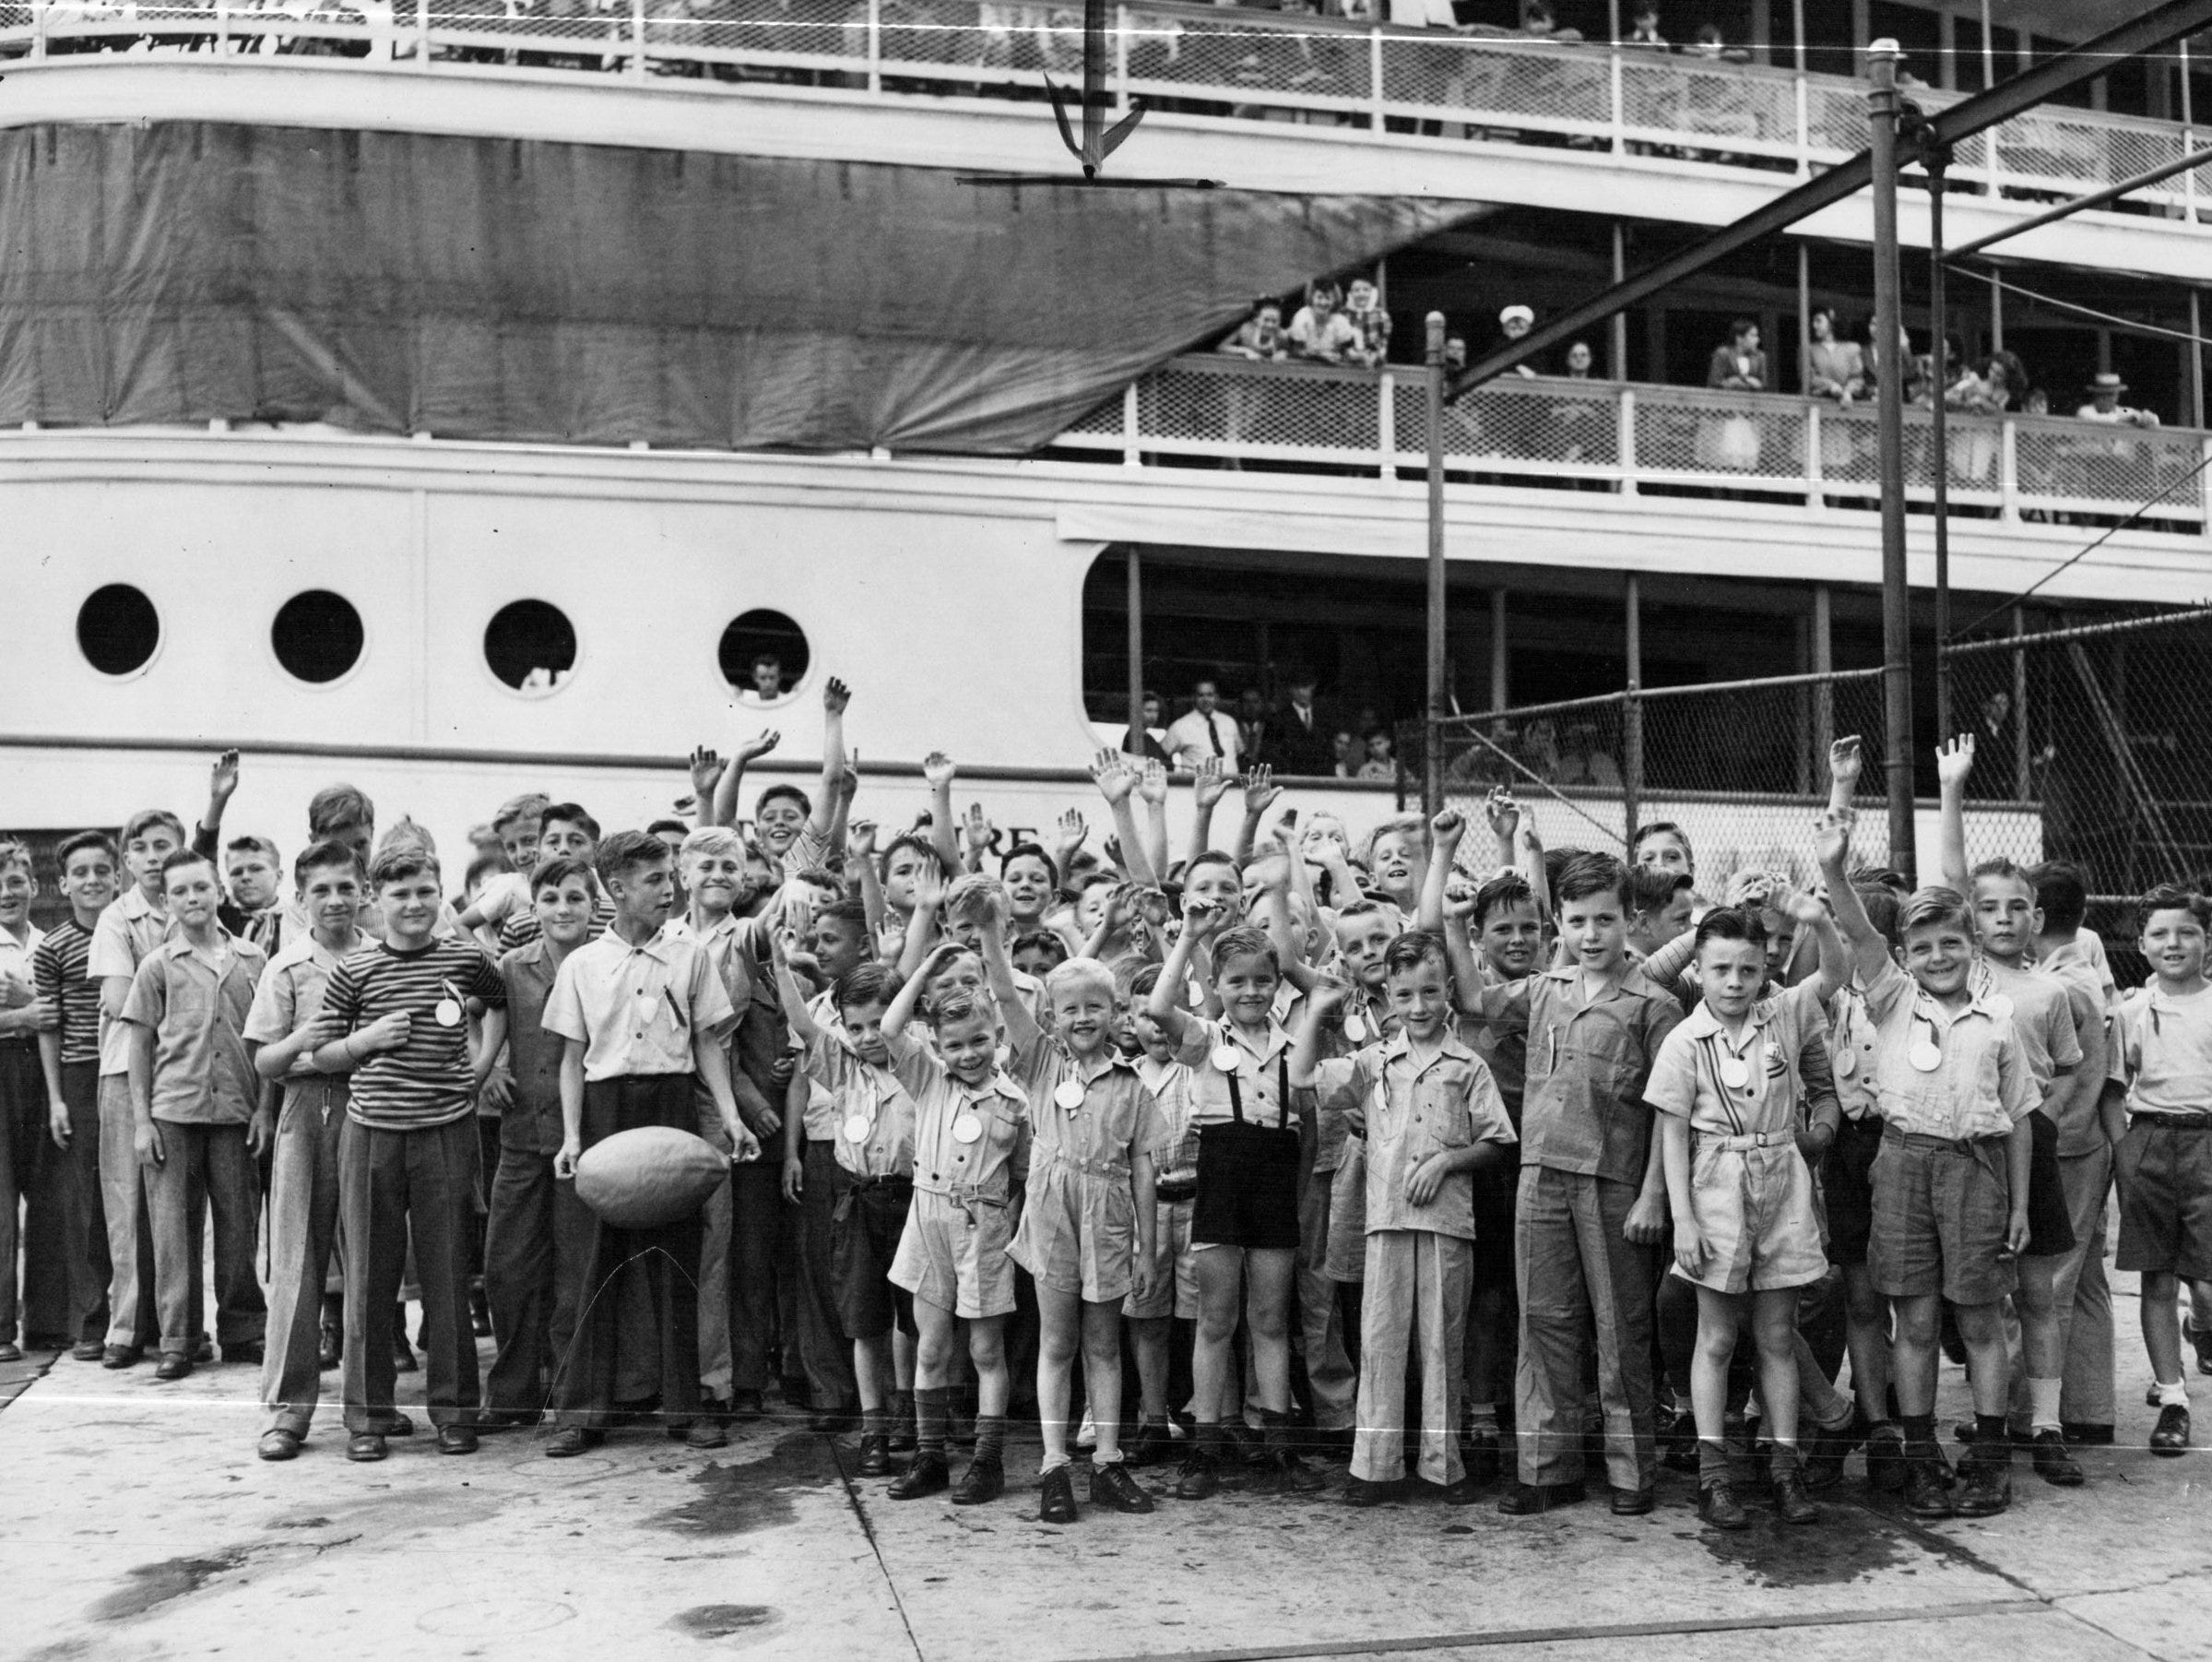 Orphans of St. Francis Society before they departed Sunday for an all day outing at Boblo in 1947. The event was the annual treat of Monaghan Council, No. 6290, Knights of Columbus.